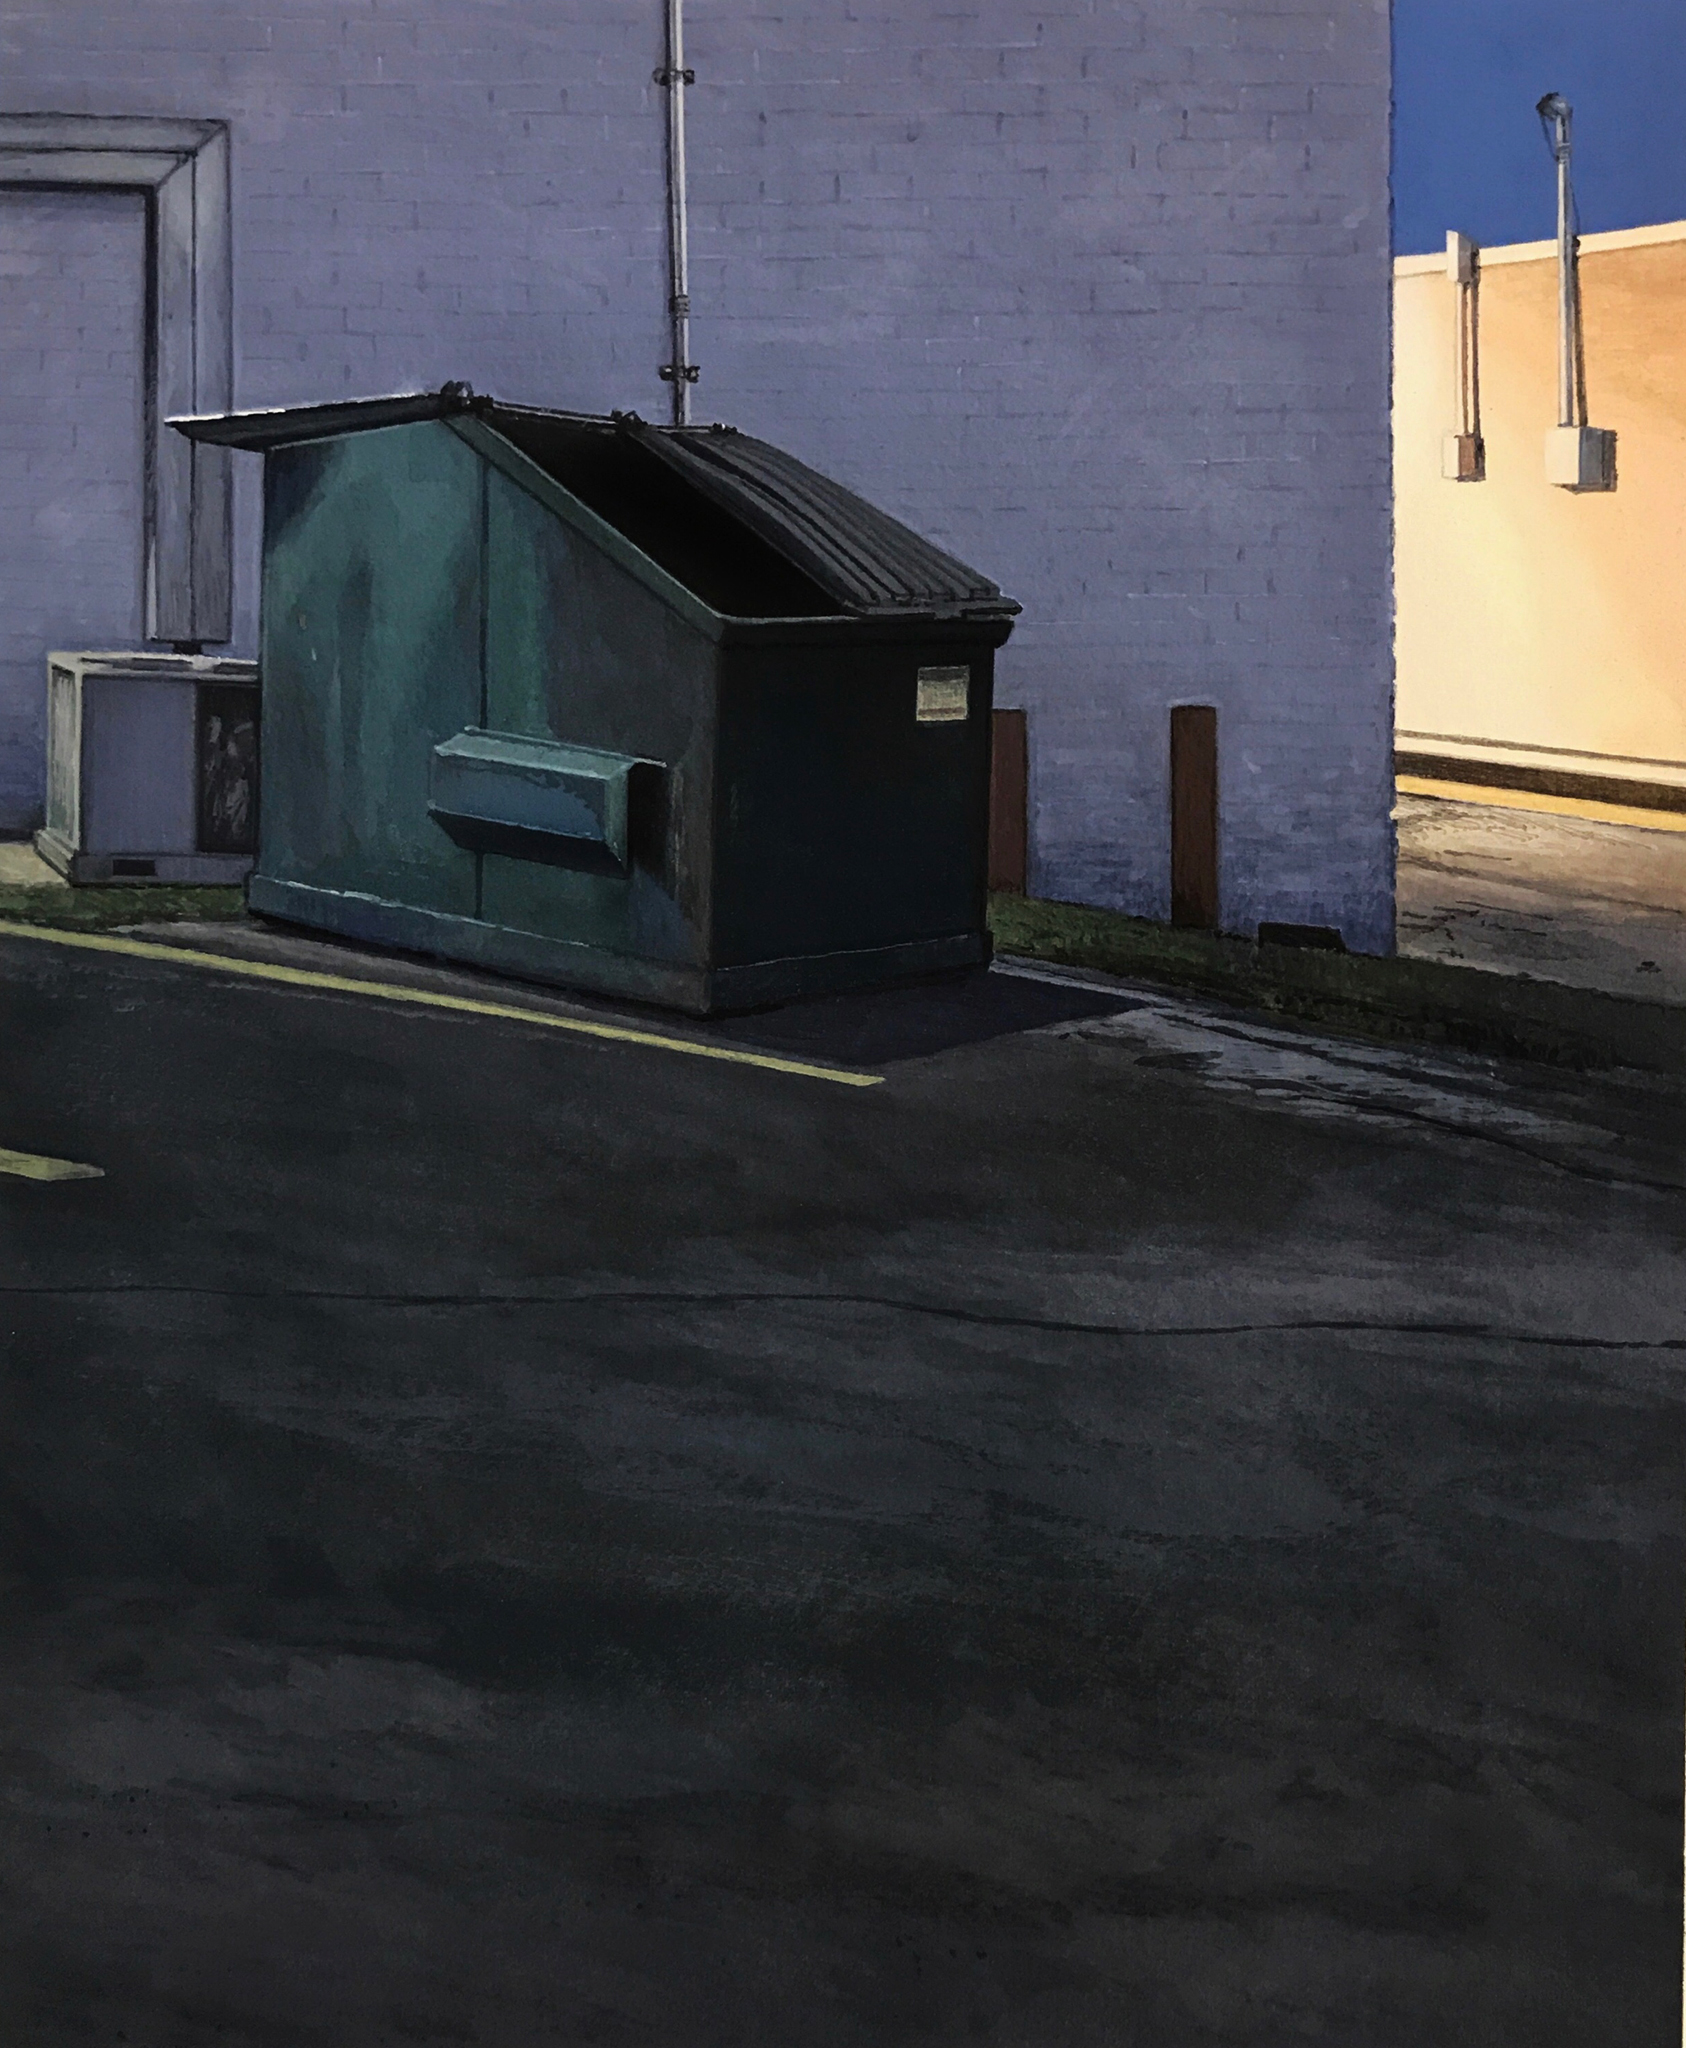 Christopher Burk | DUMPSTER–NOCTURNE II | gouache on paper | 10 x 8""